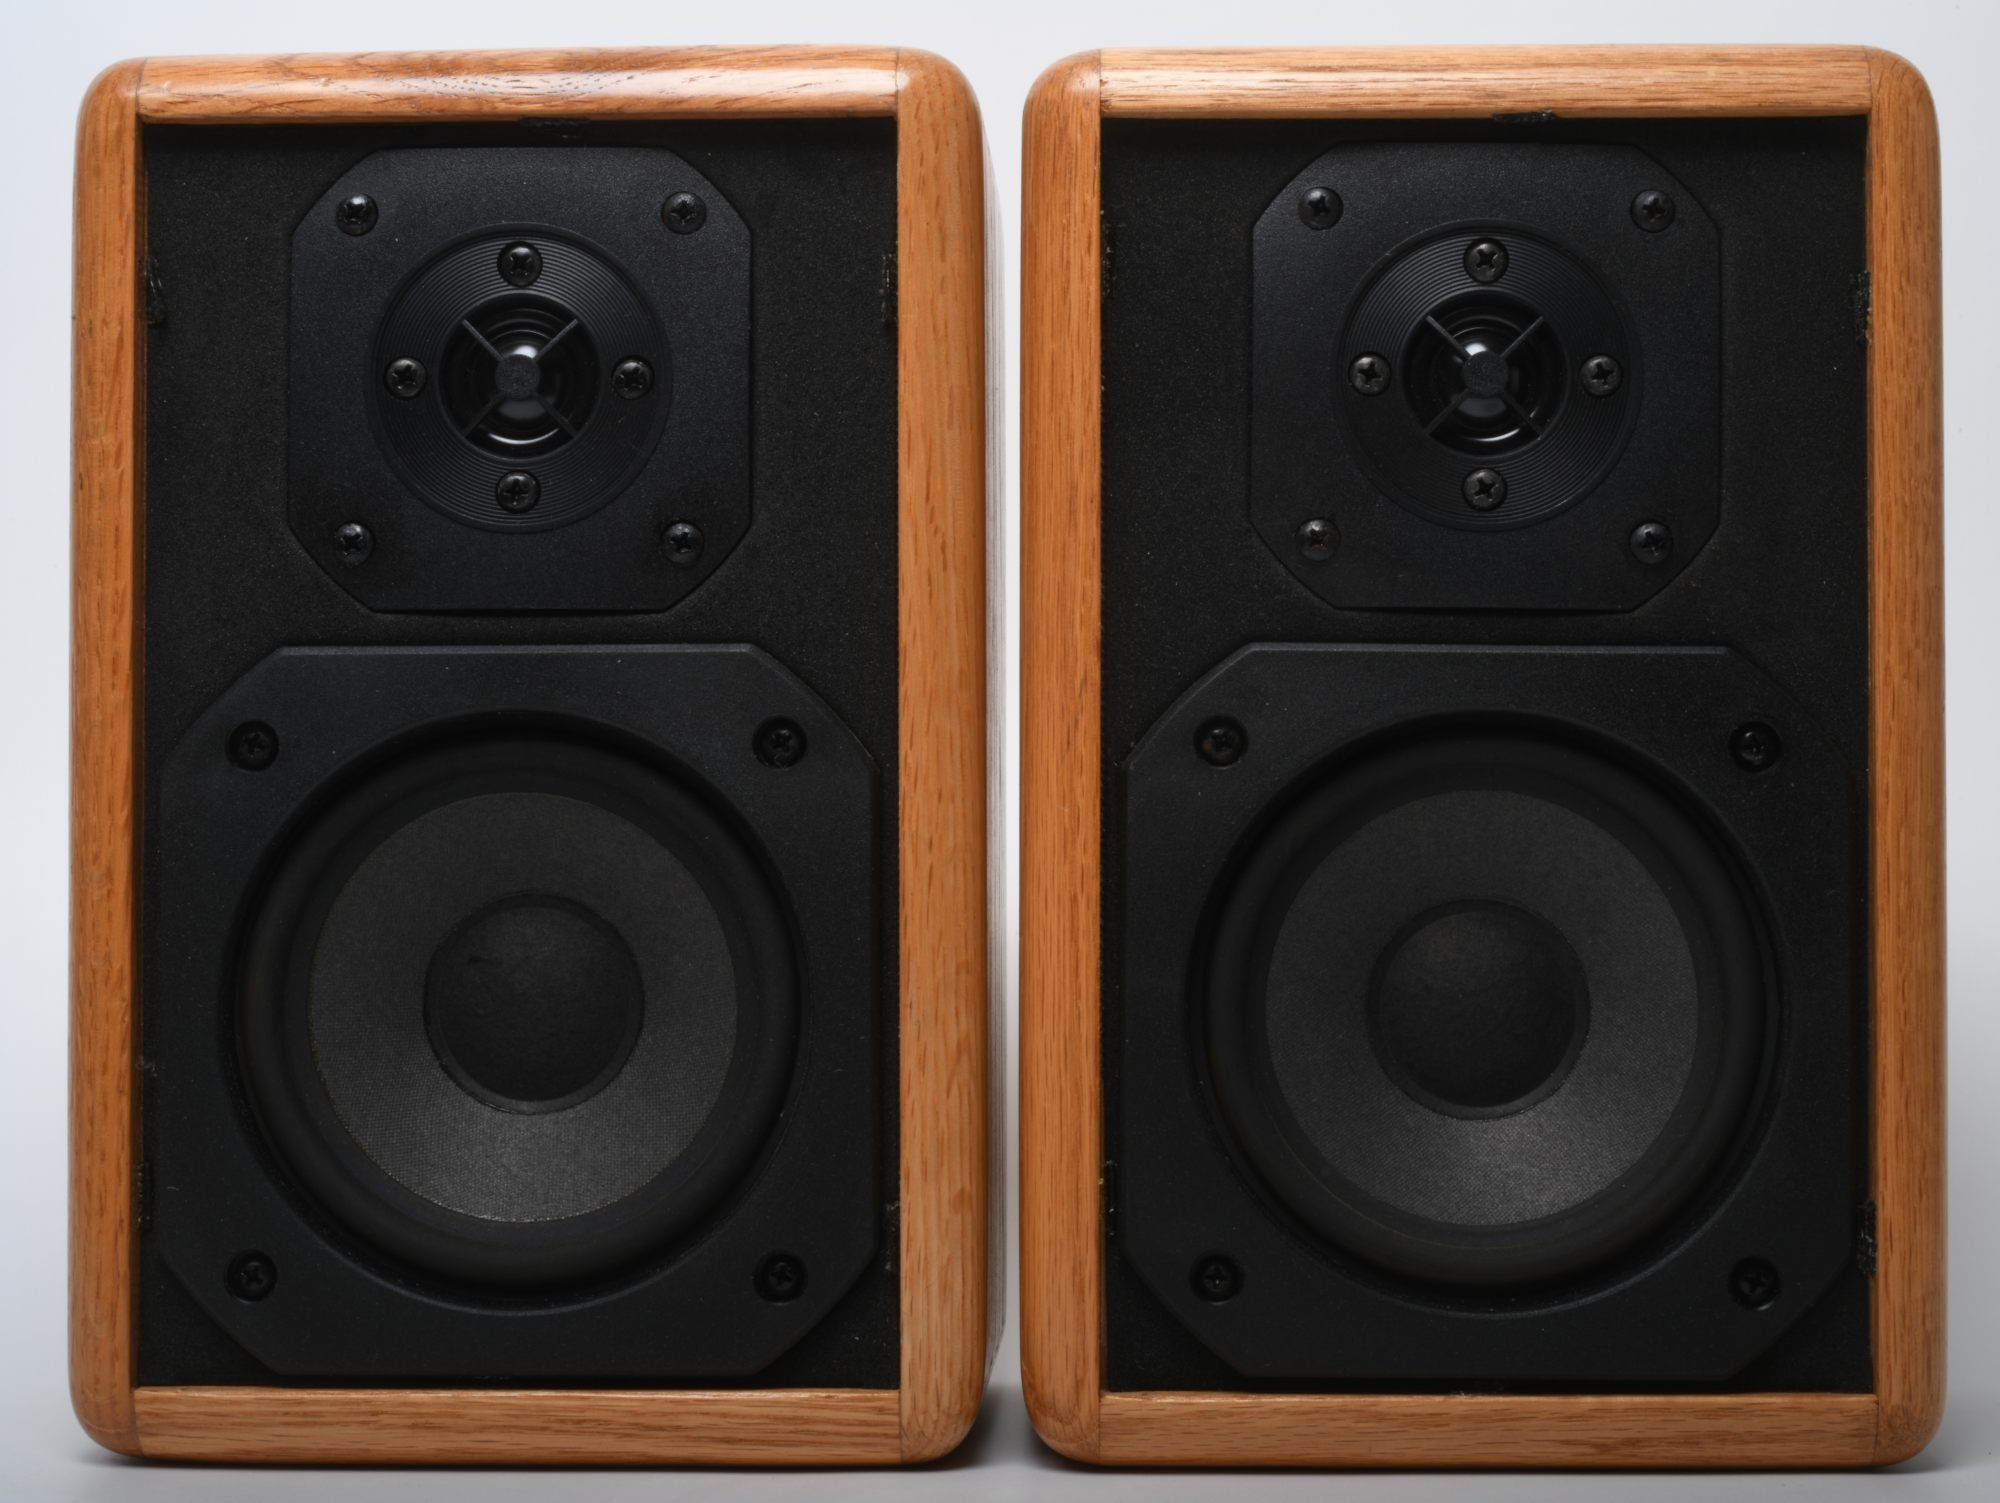 This 2nd pair is superfluous to my needs although I will put them to use to replace the below listed JBL speakers should the JBL speakers sell $200